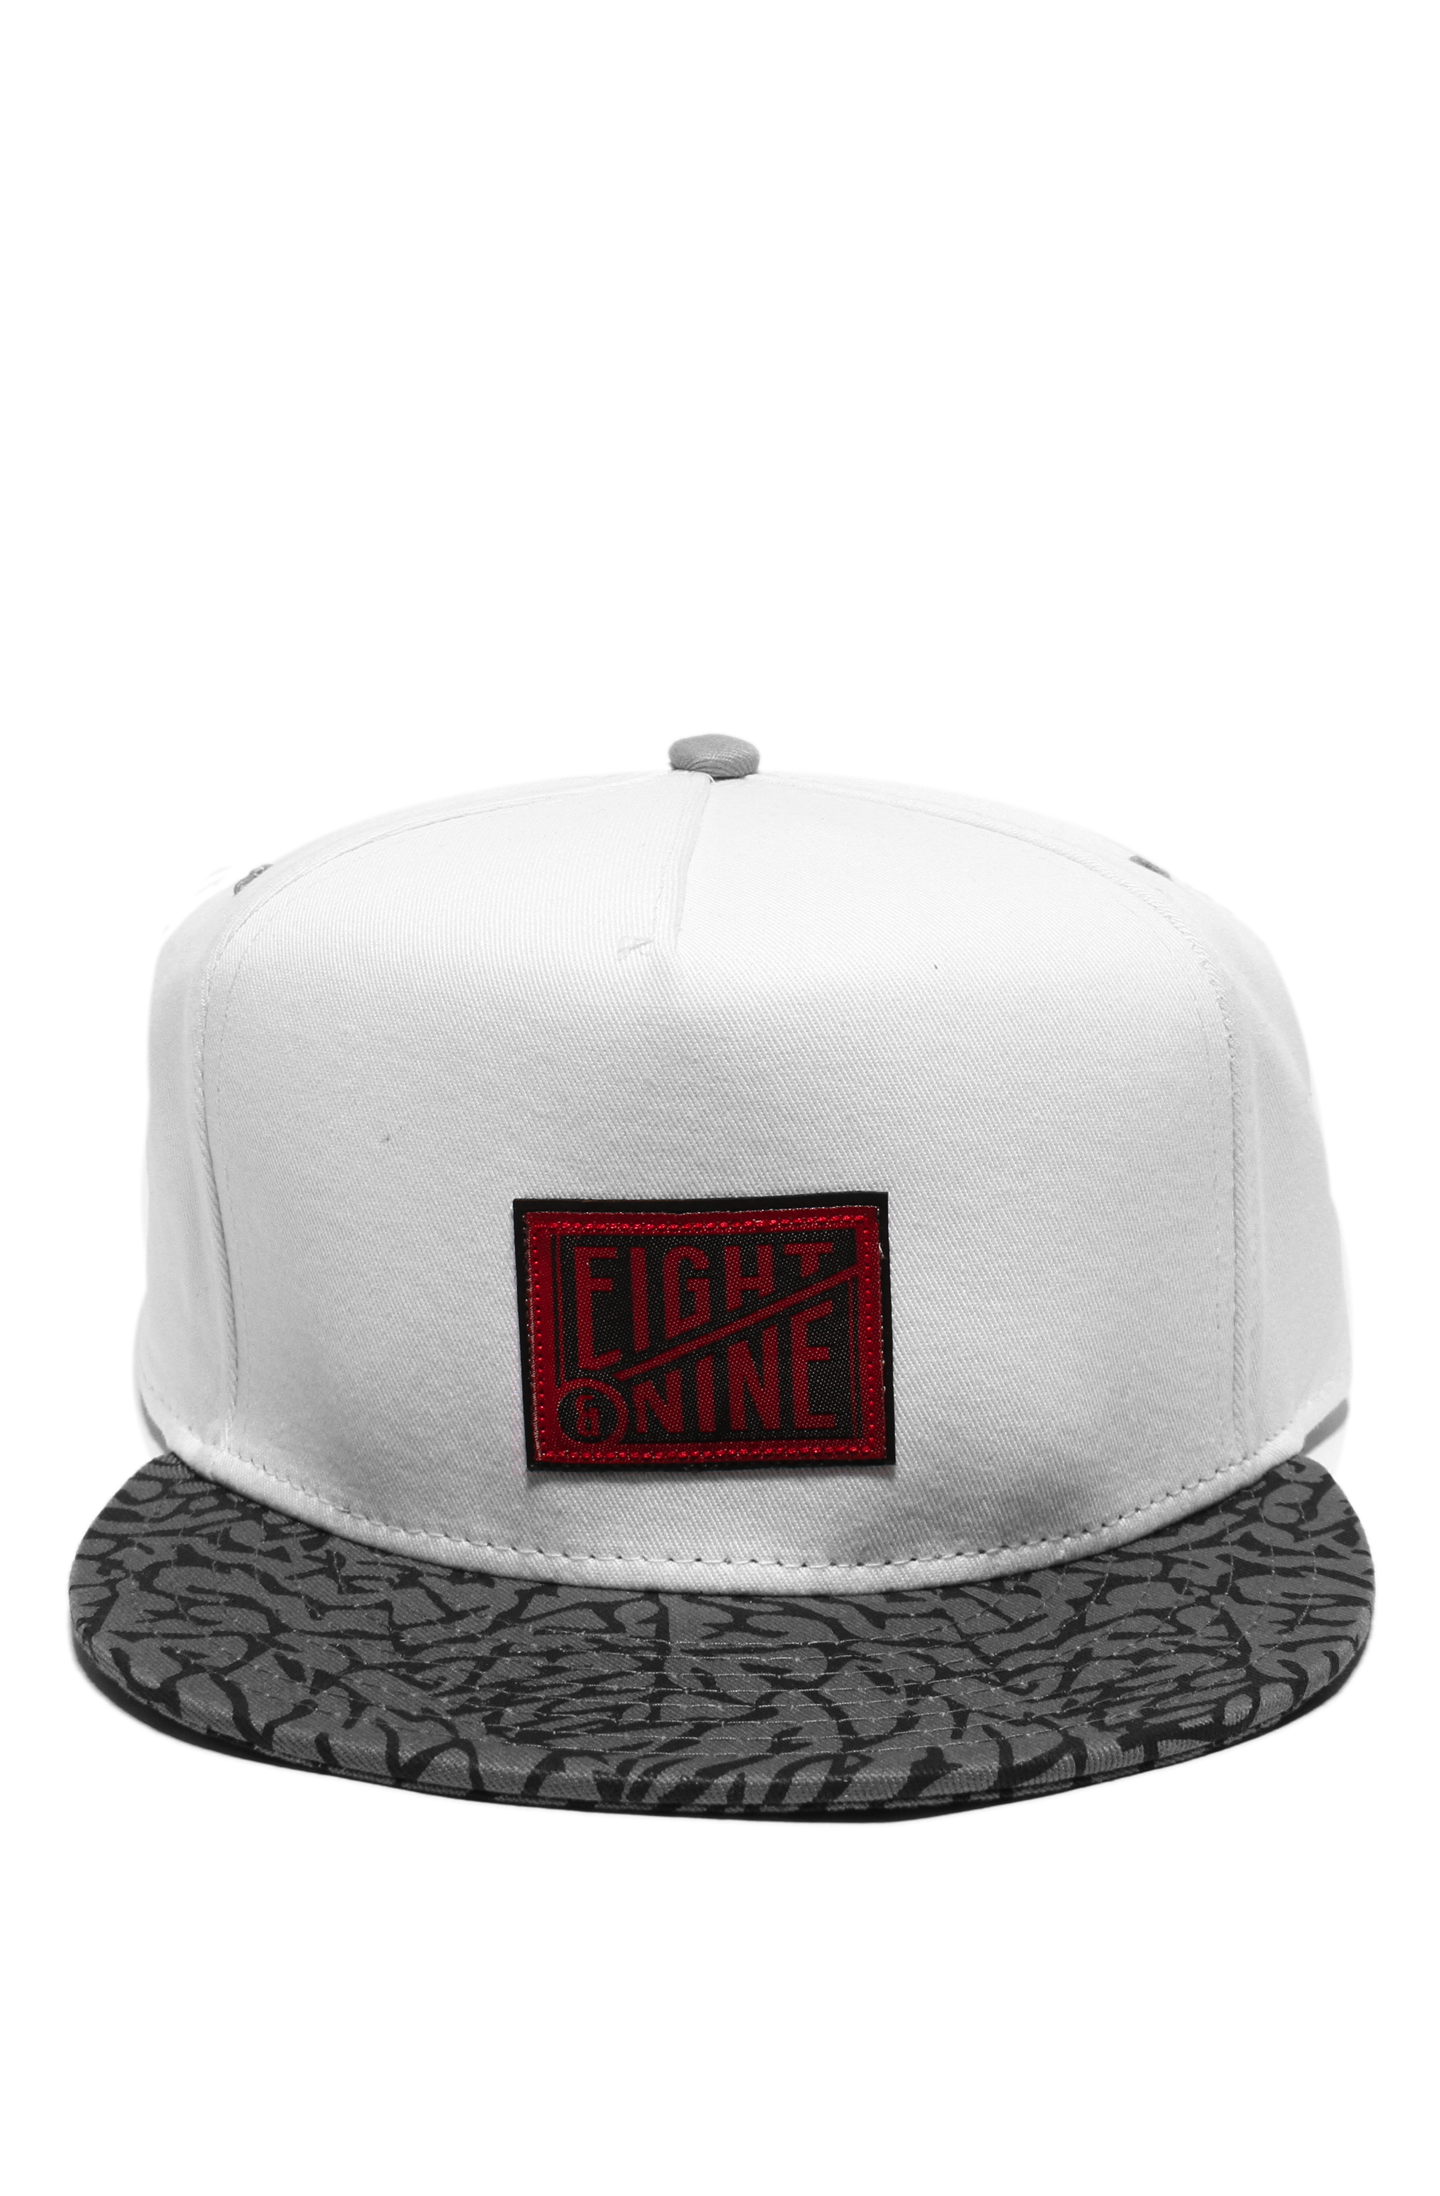 hat to match white jordan cement 3